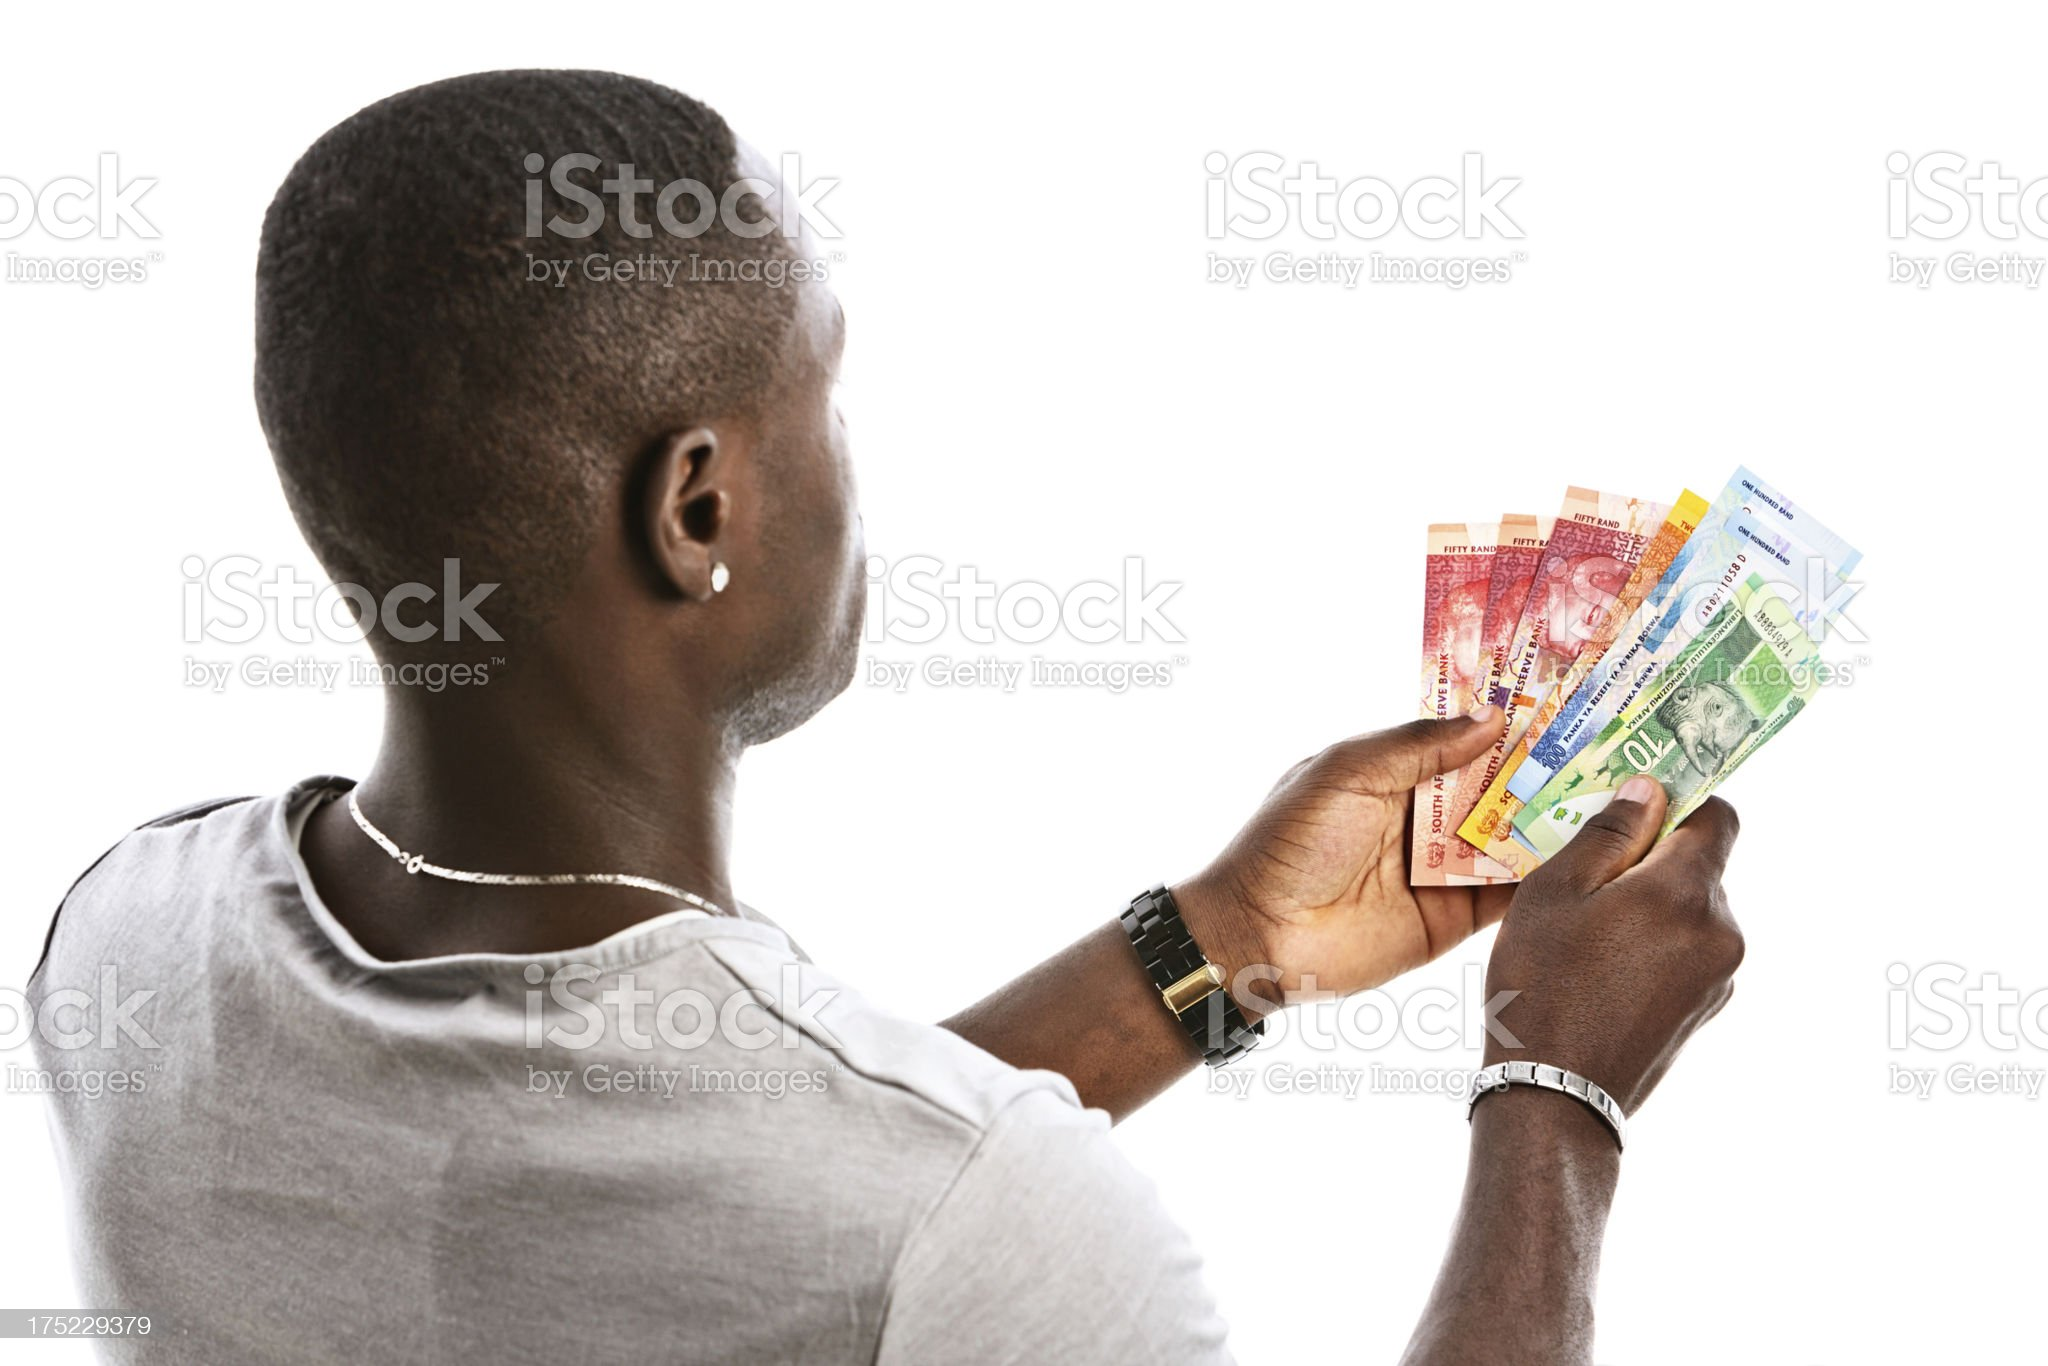 Looking over shoulder of man holding South African banknotes royalty-free stock photo